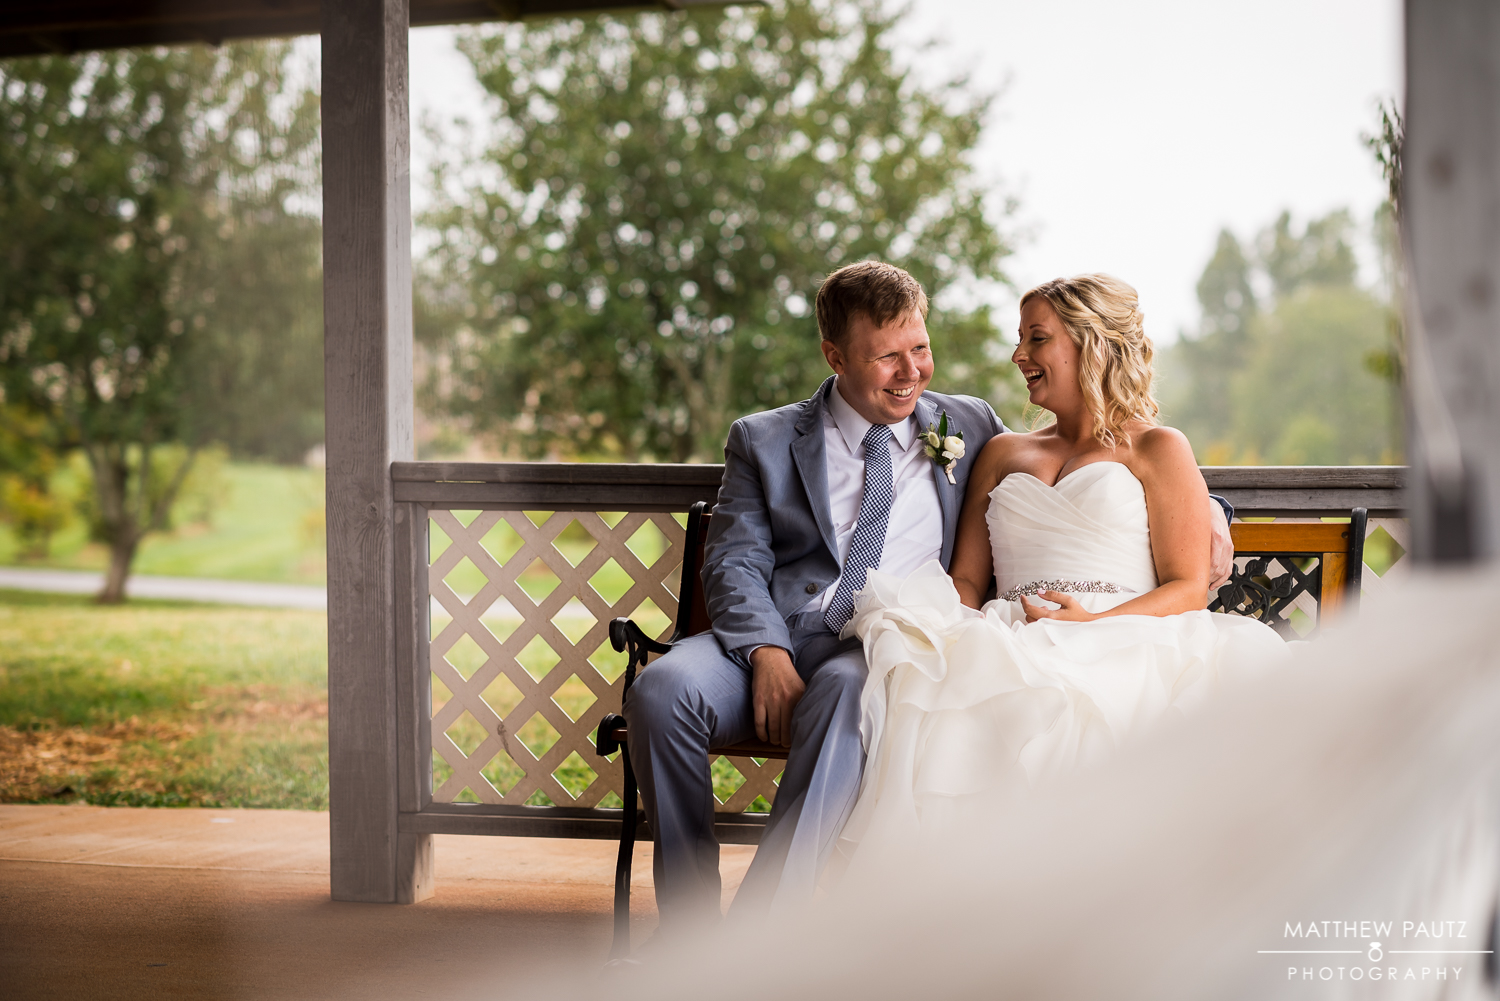 Greenbrier Farms wedding photographer